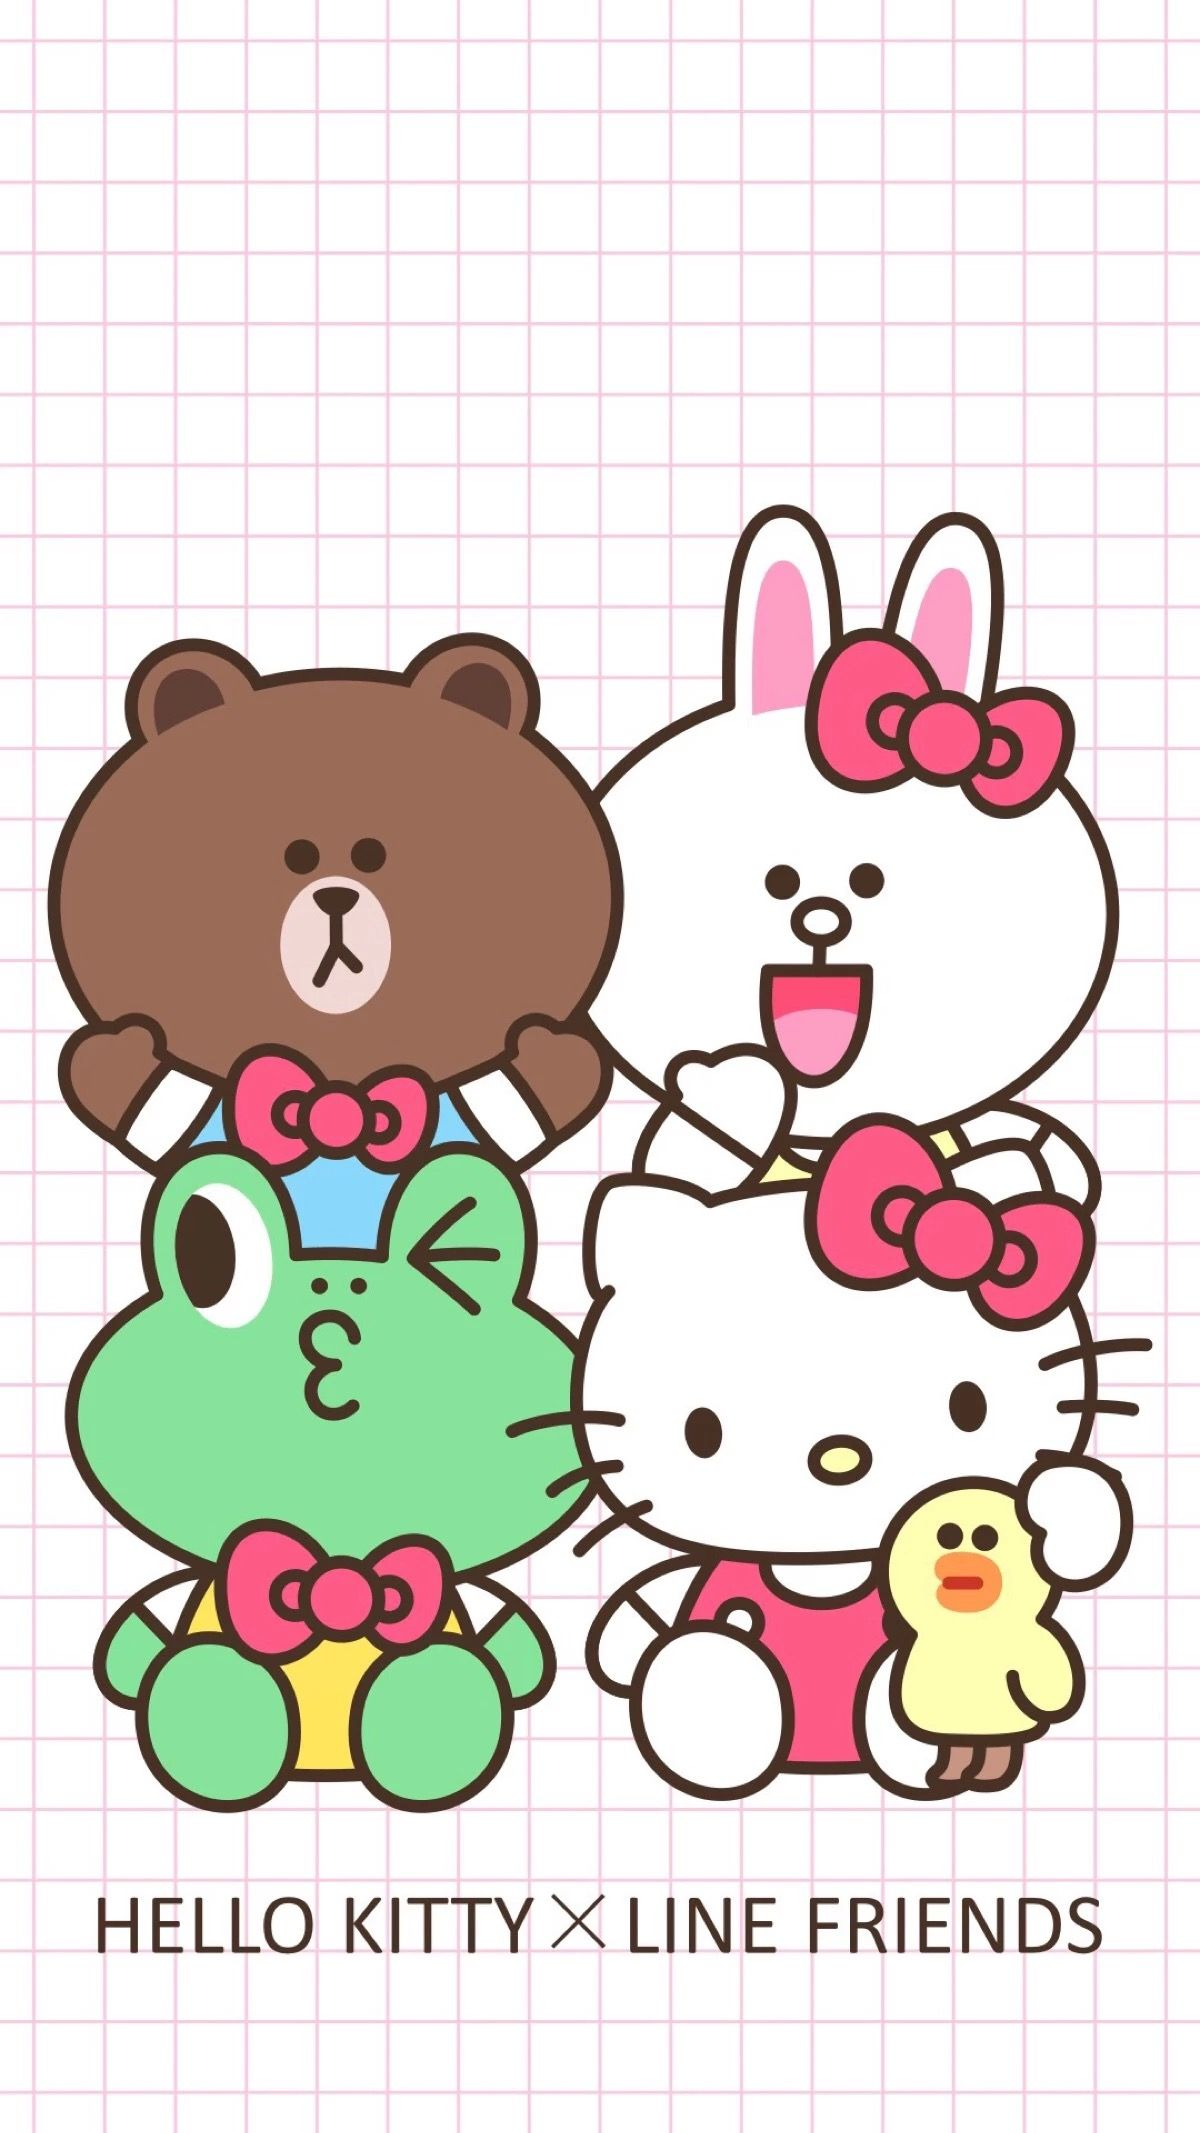 Kitty Wallpaper, Kawaii Stuff, Rilakkuma, Sanrio, Hello Kitty